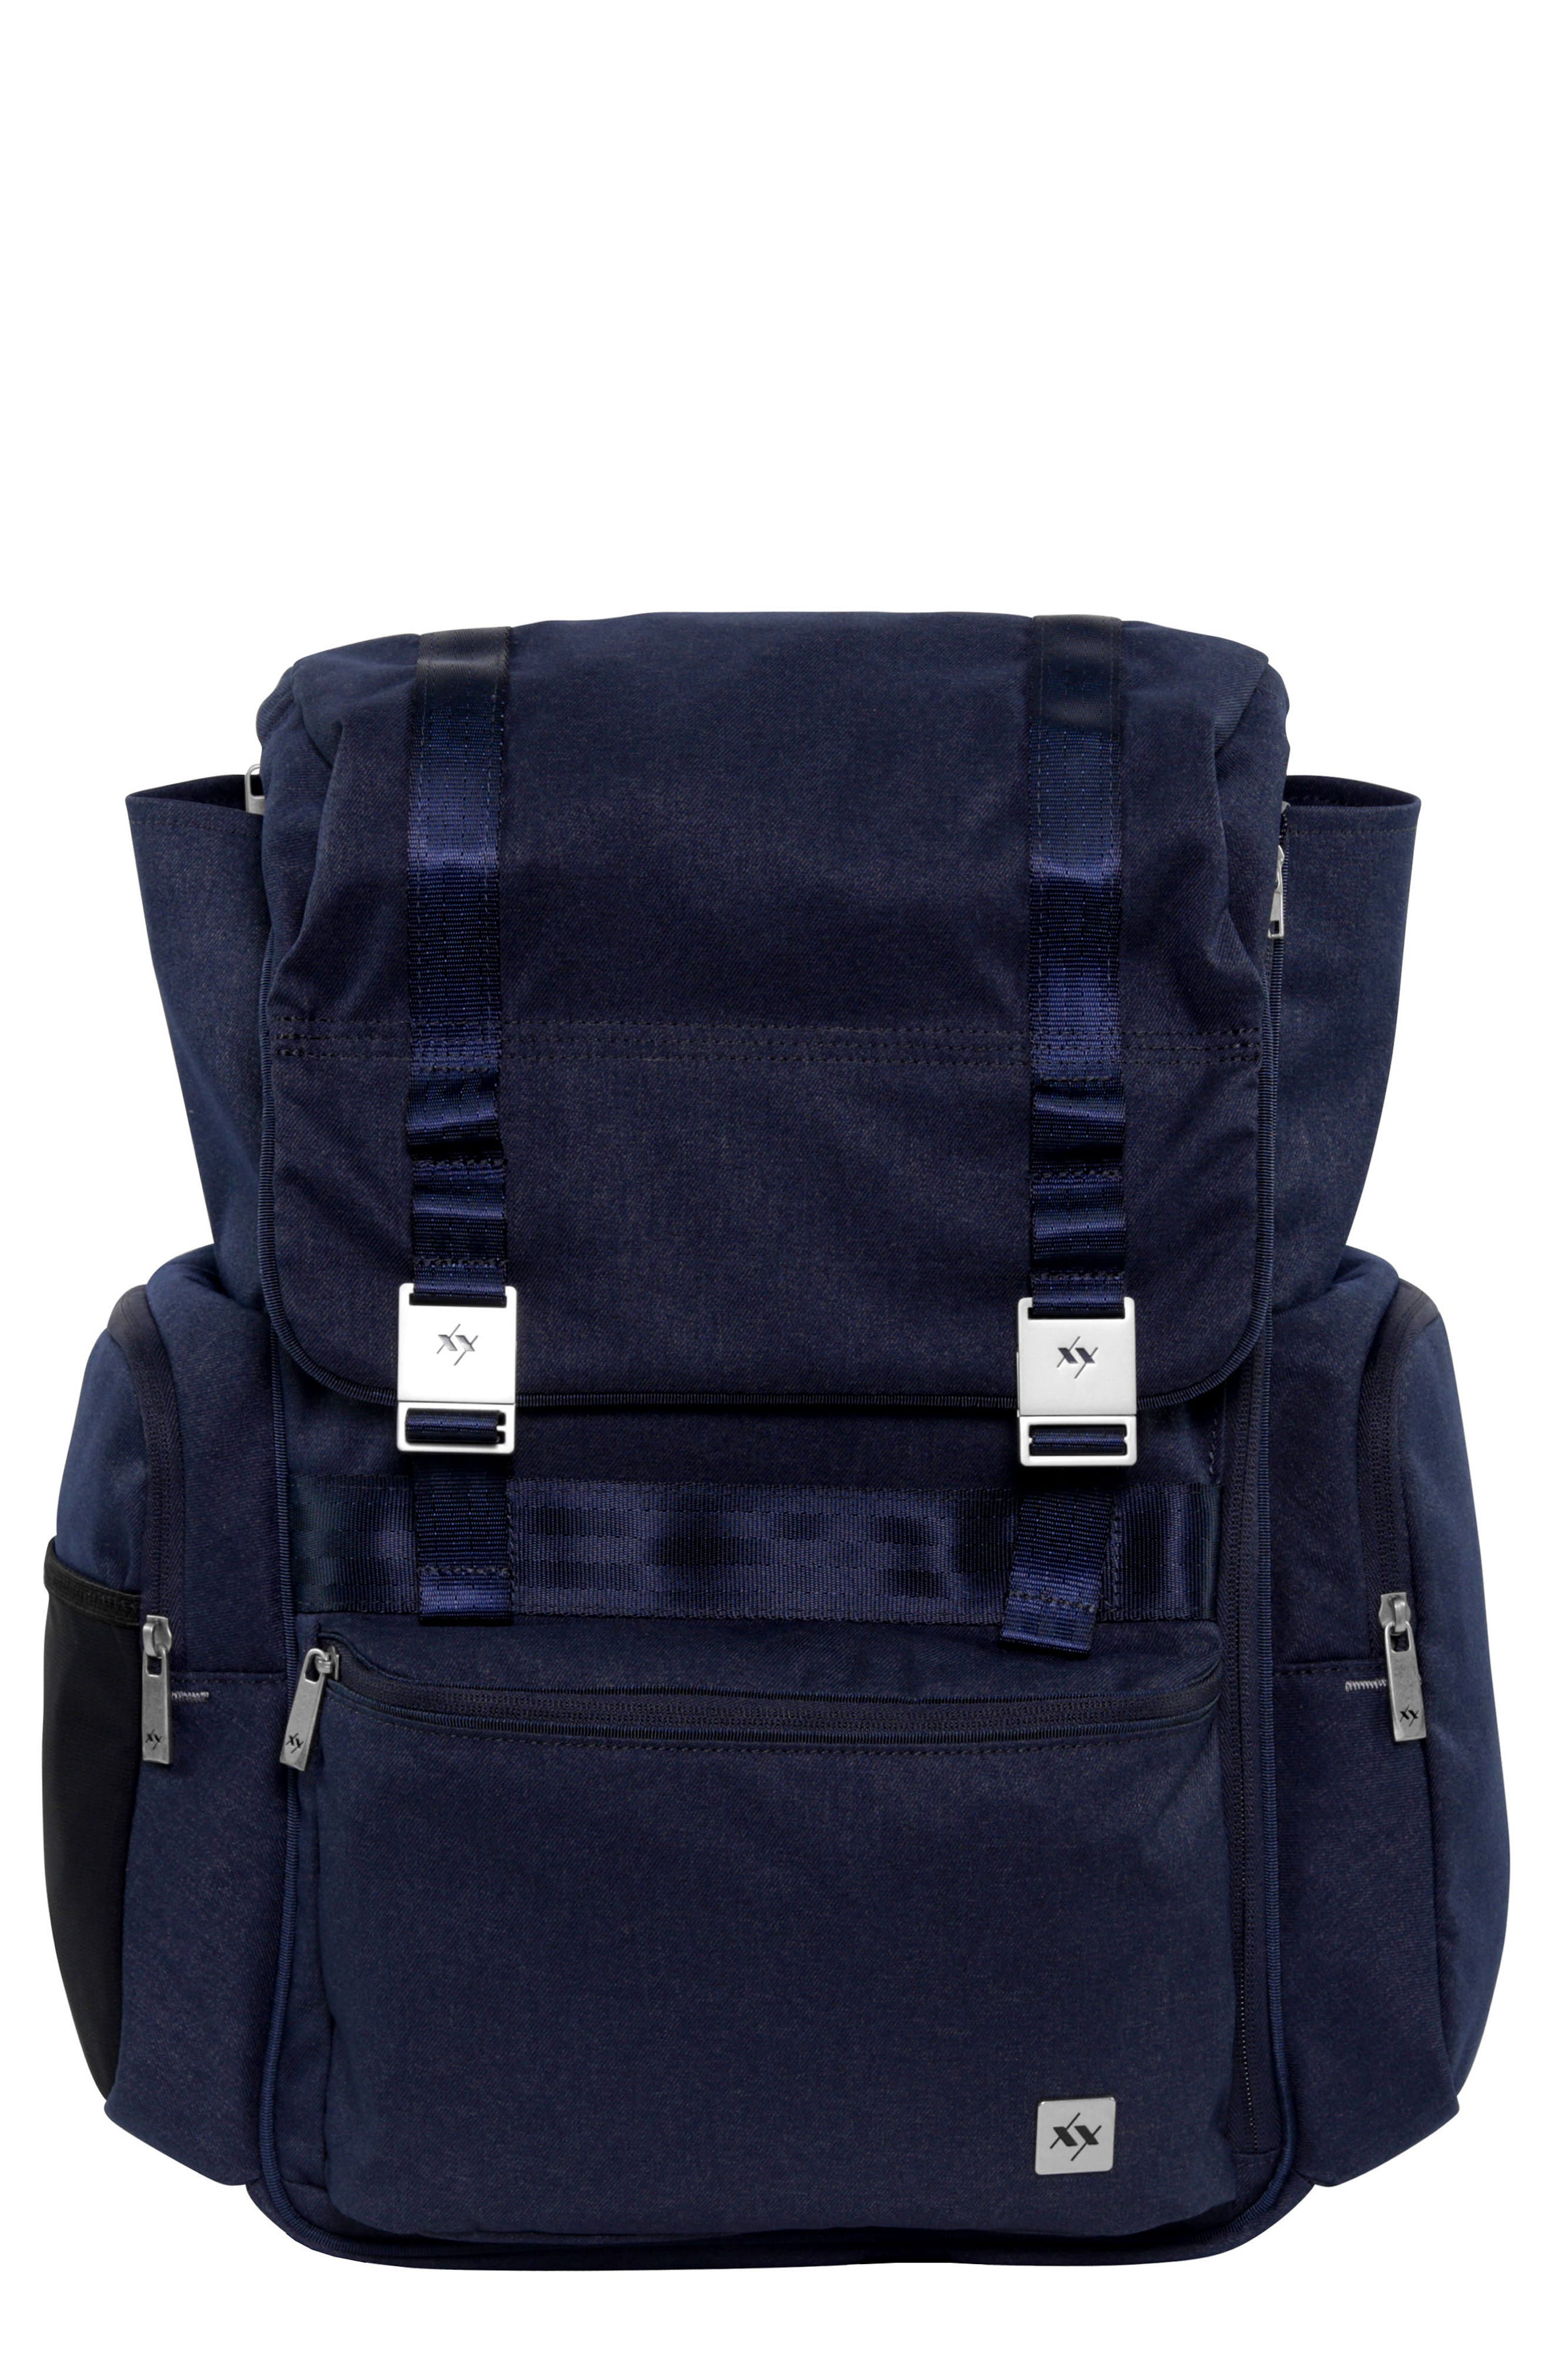 Ju-Ju-Be XY Hatch Diaper Backpack